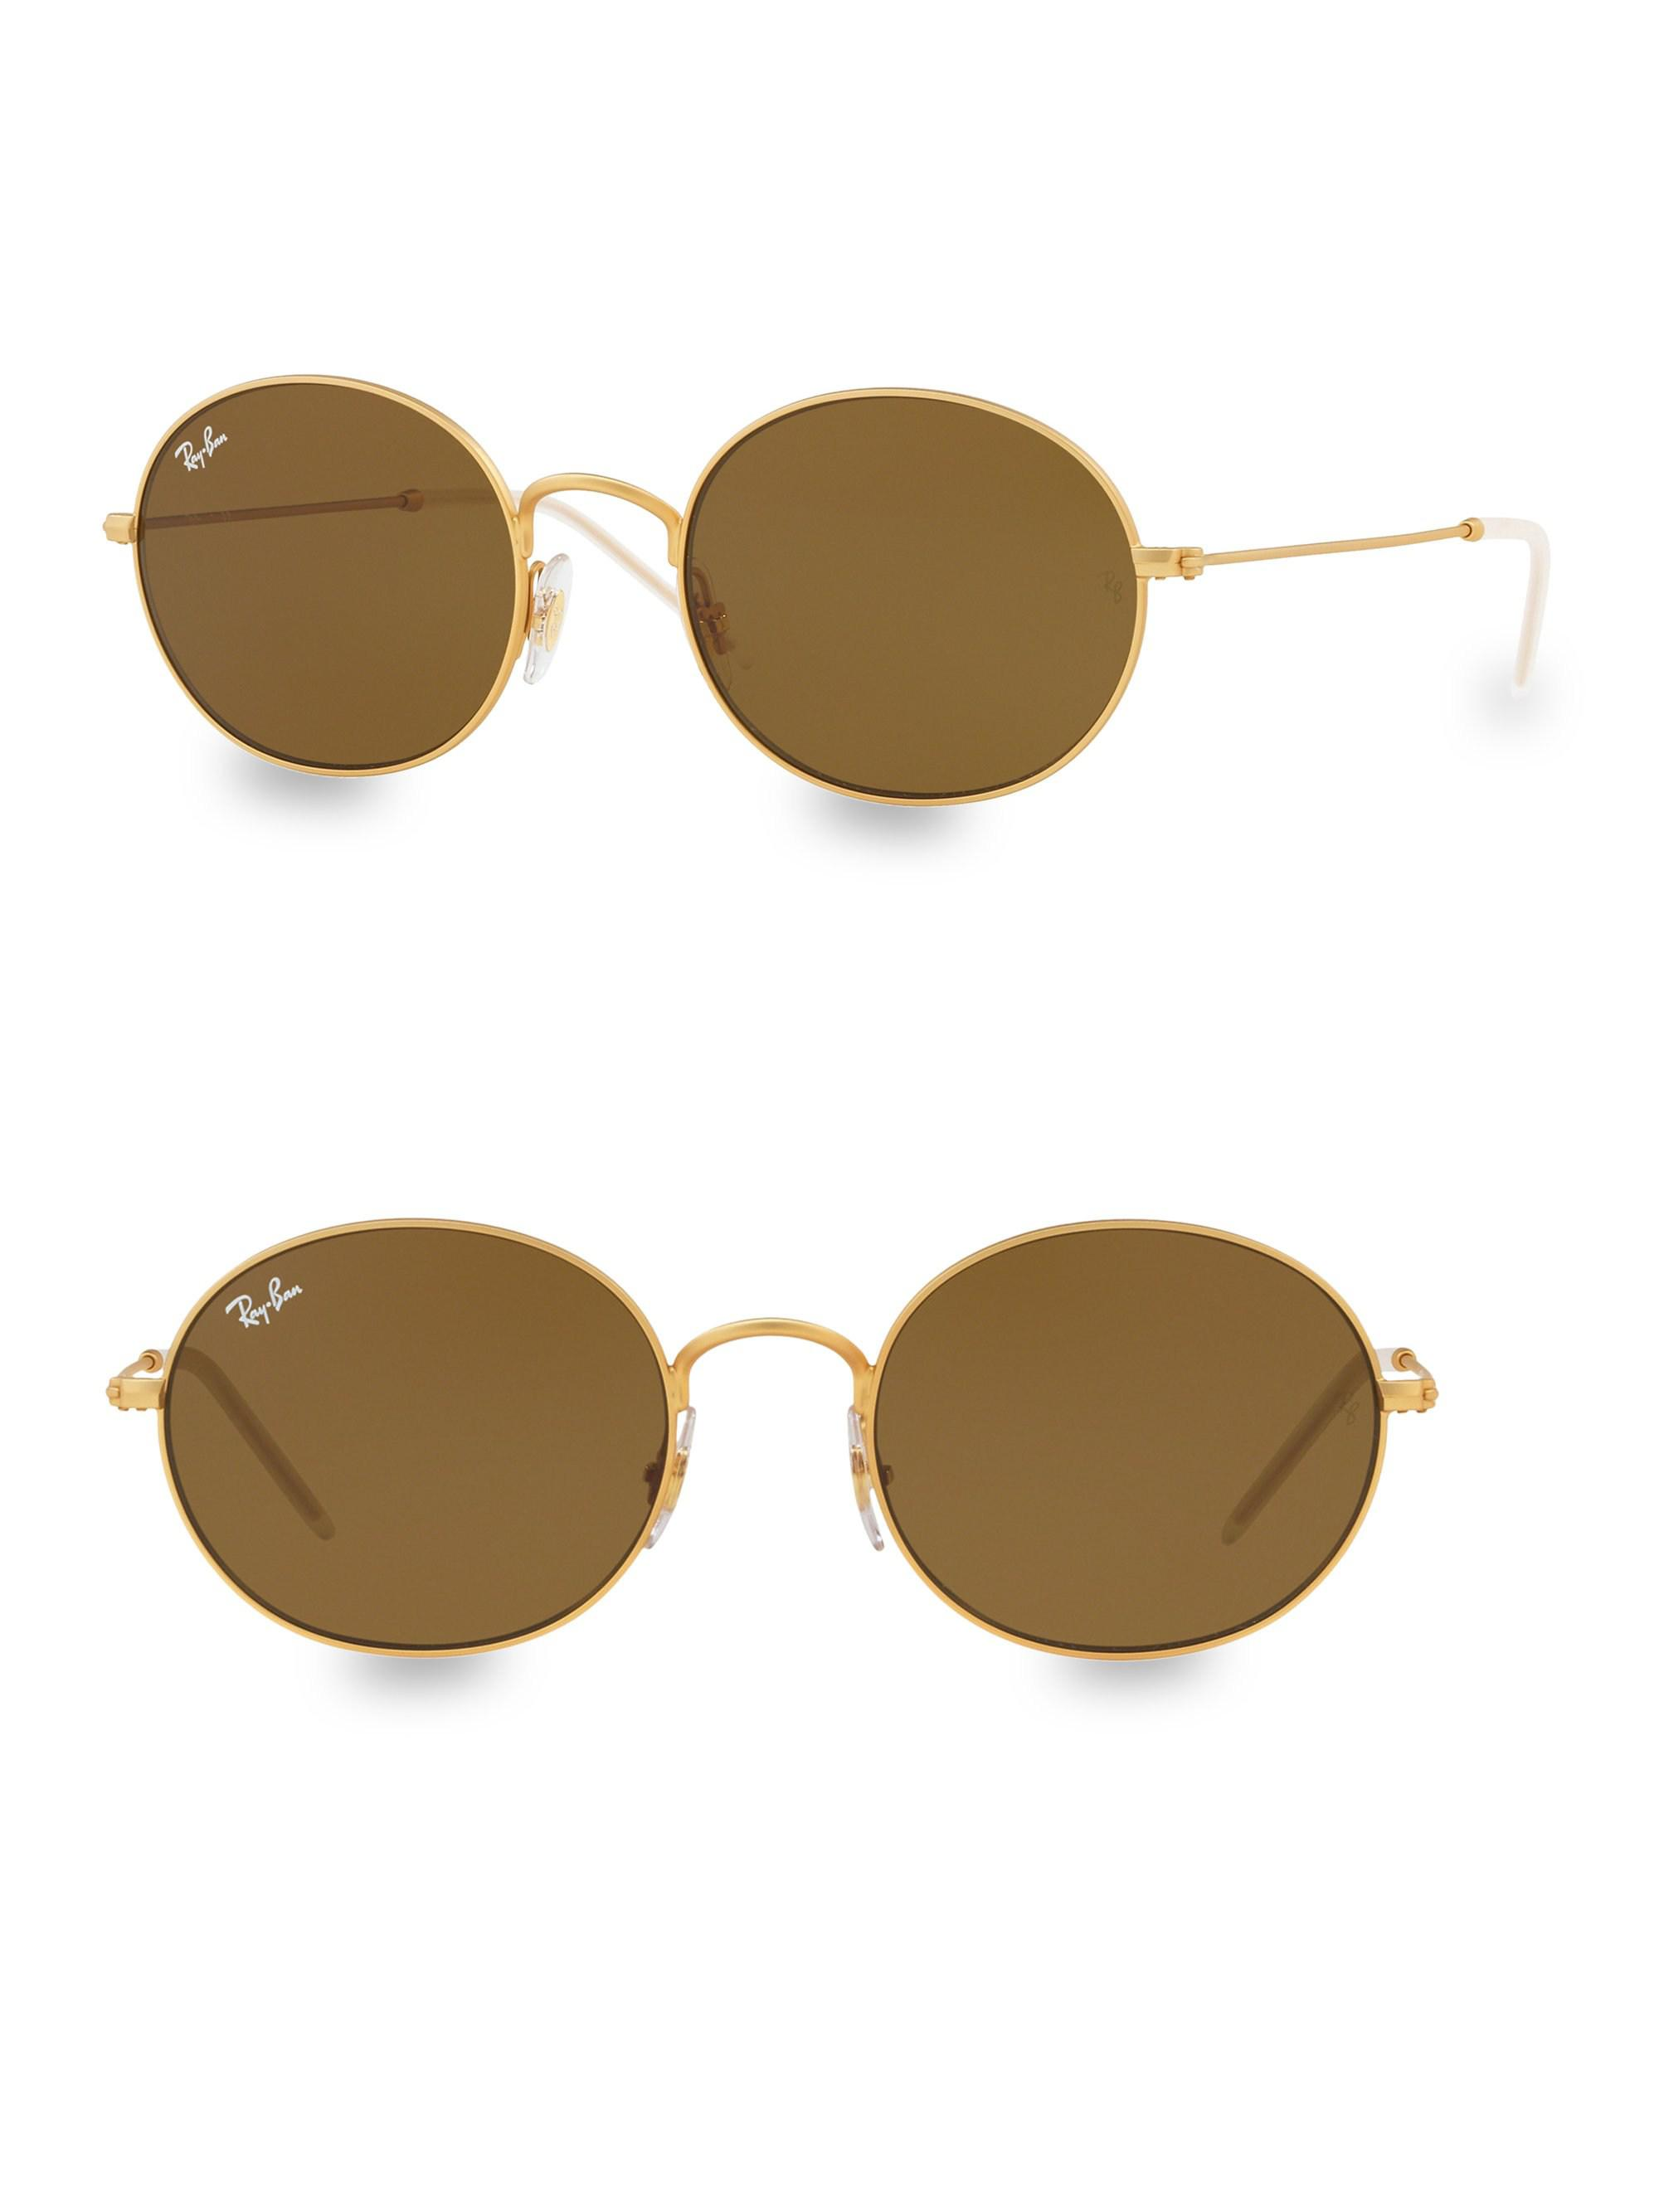 455831eee2 Ray-Ban 53mm Solid Gold Oval Sunglasses in Metallic - Lyst